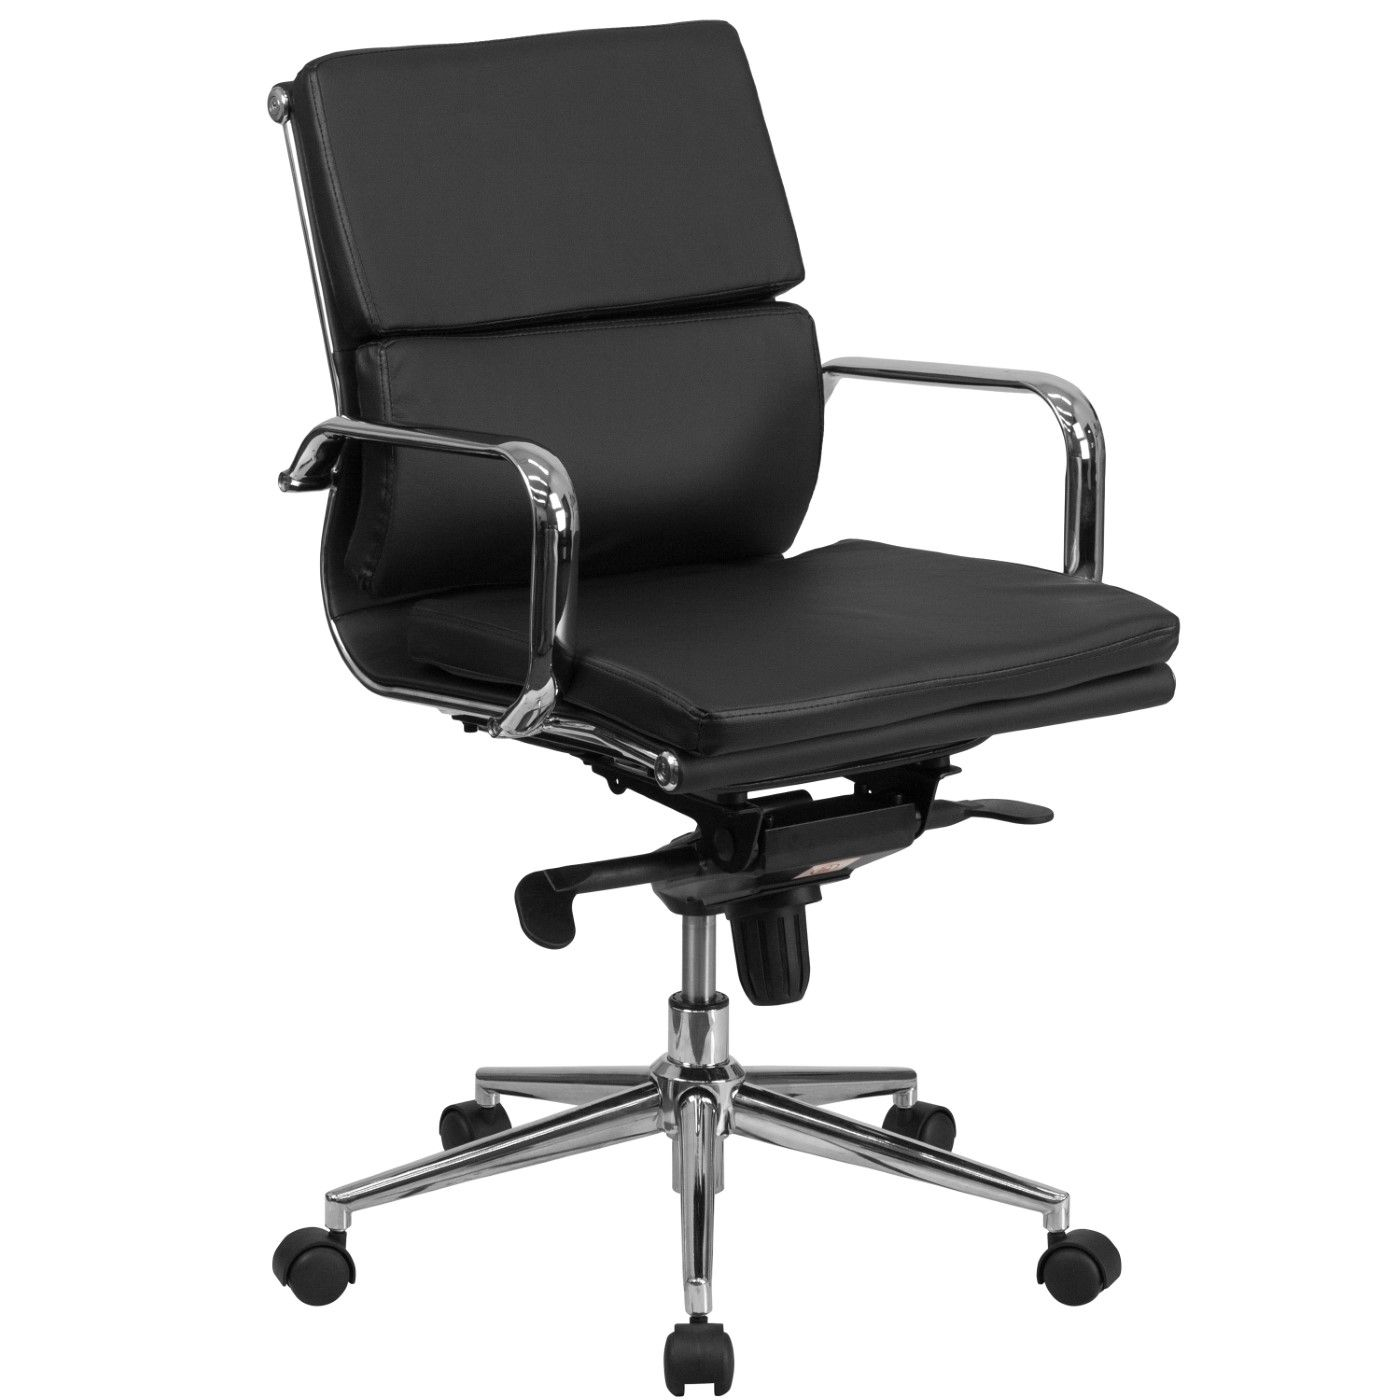 Mid-Back Black LeatherSoft Executive Swivel Office Chair with Synchro-Tilt Mechanism and Arms